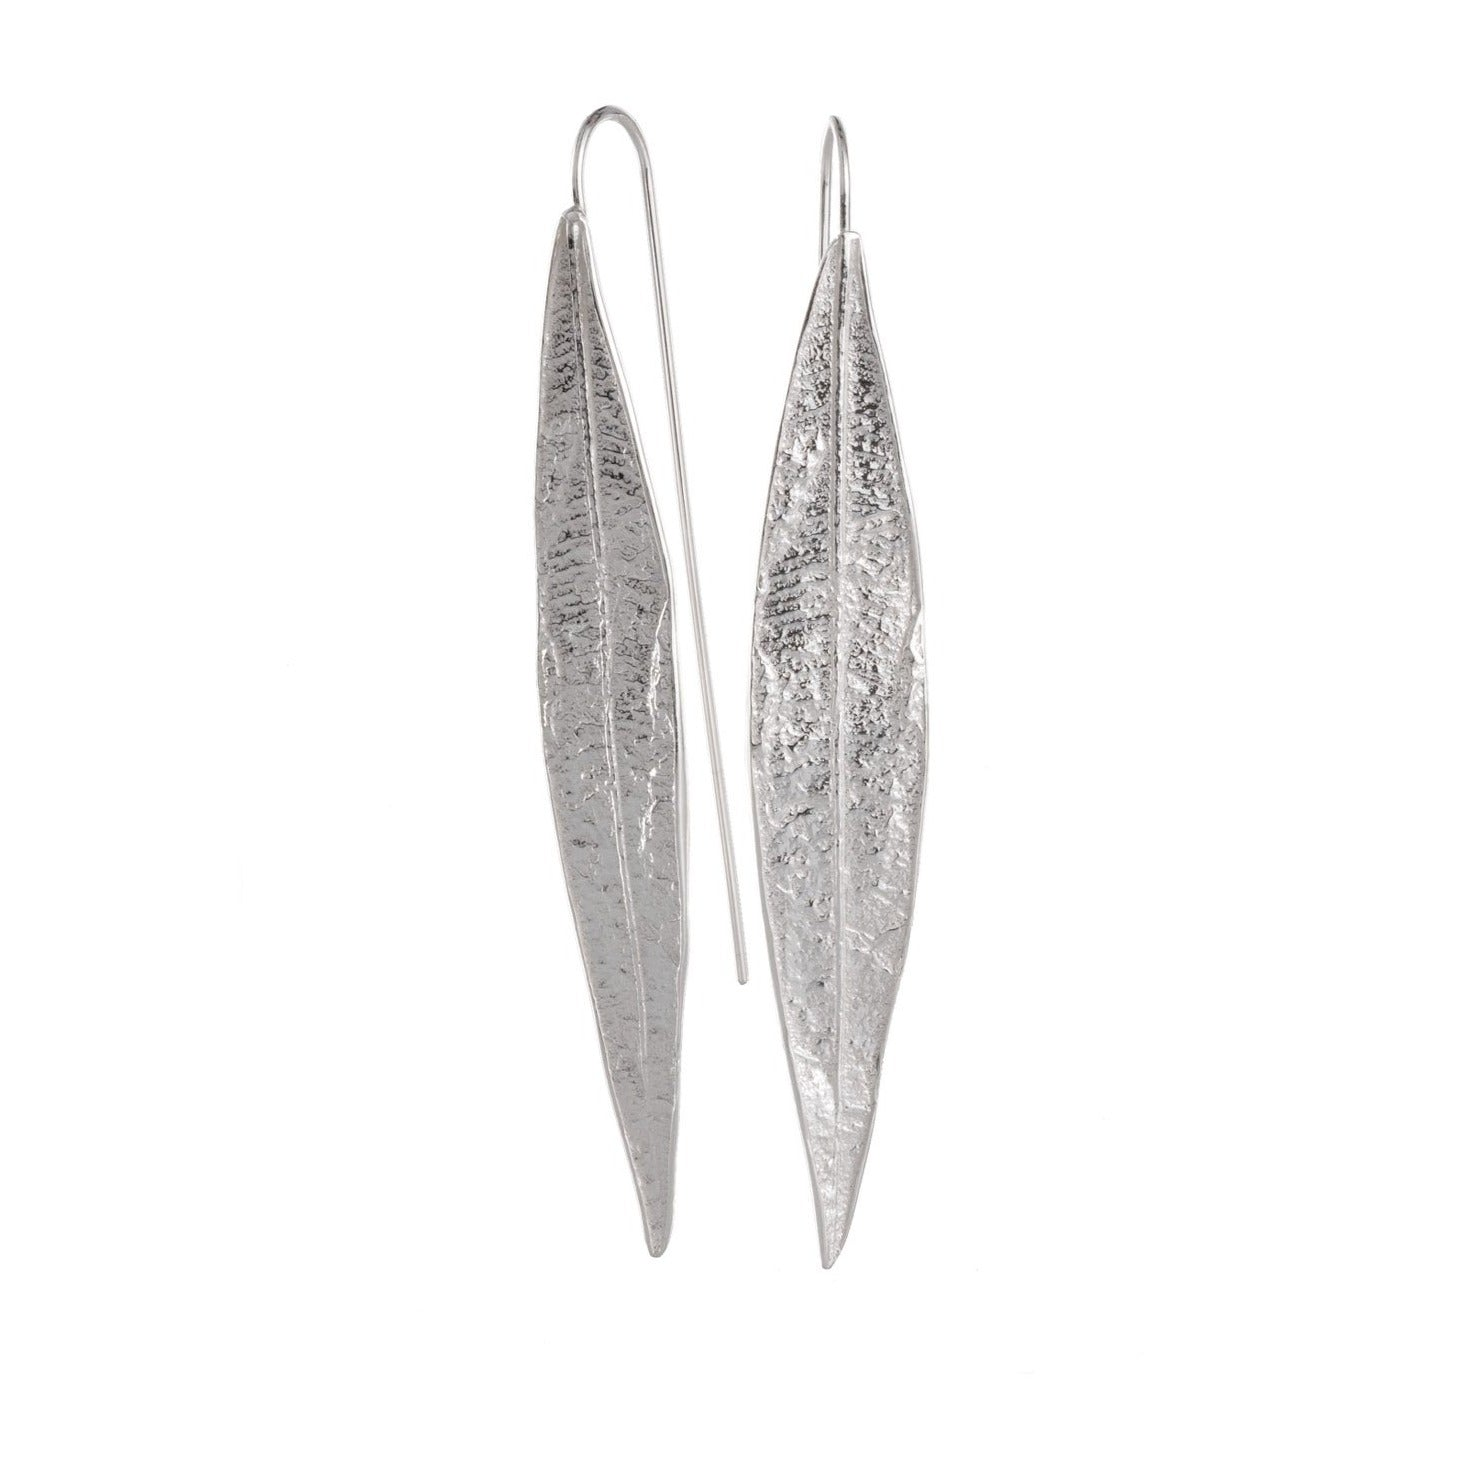 Airy Heights Design oleander leaf earrings